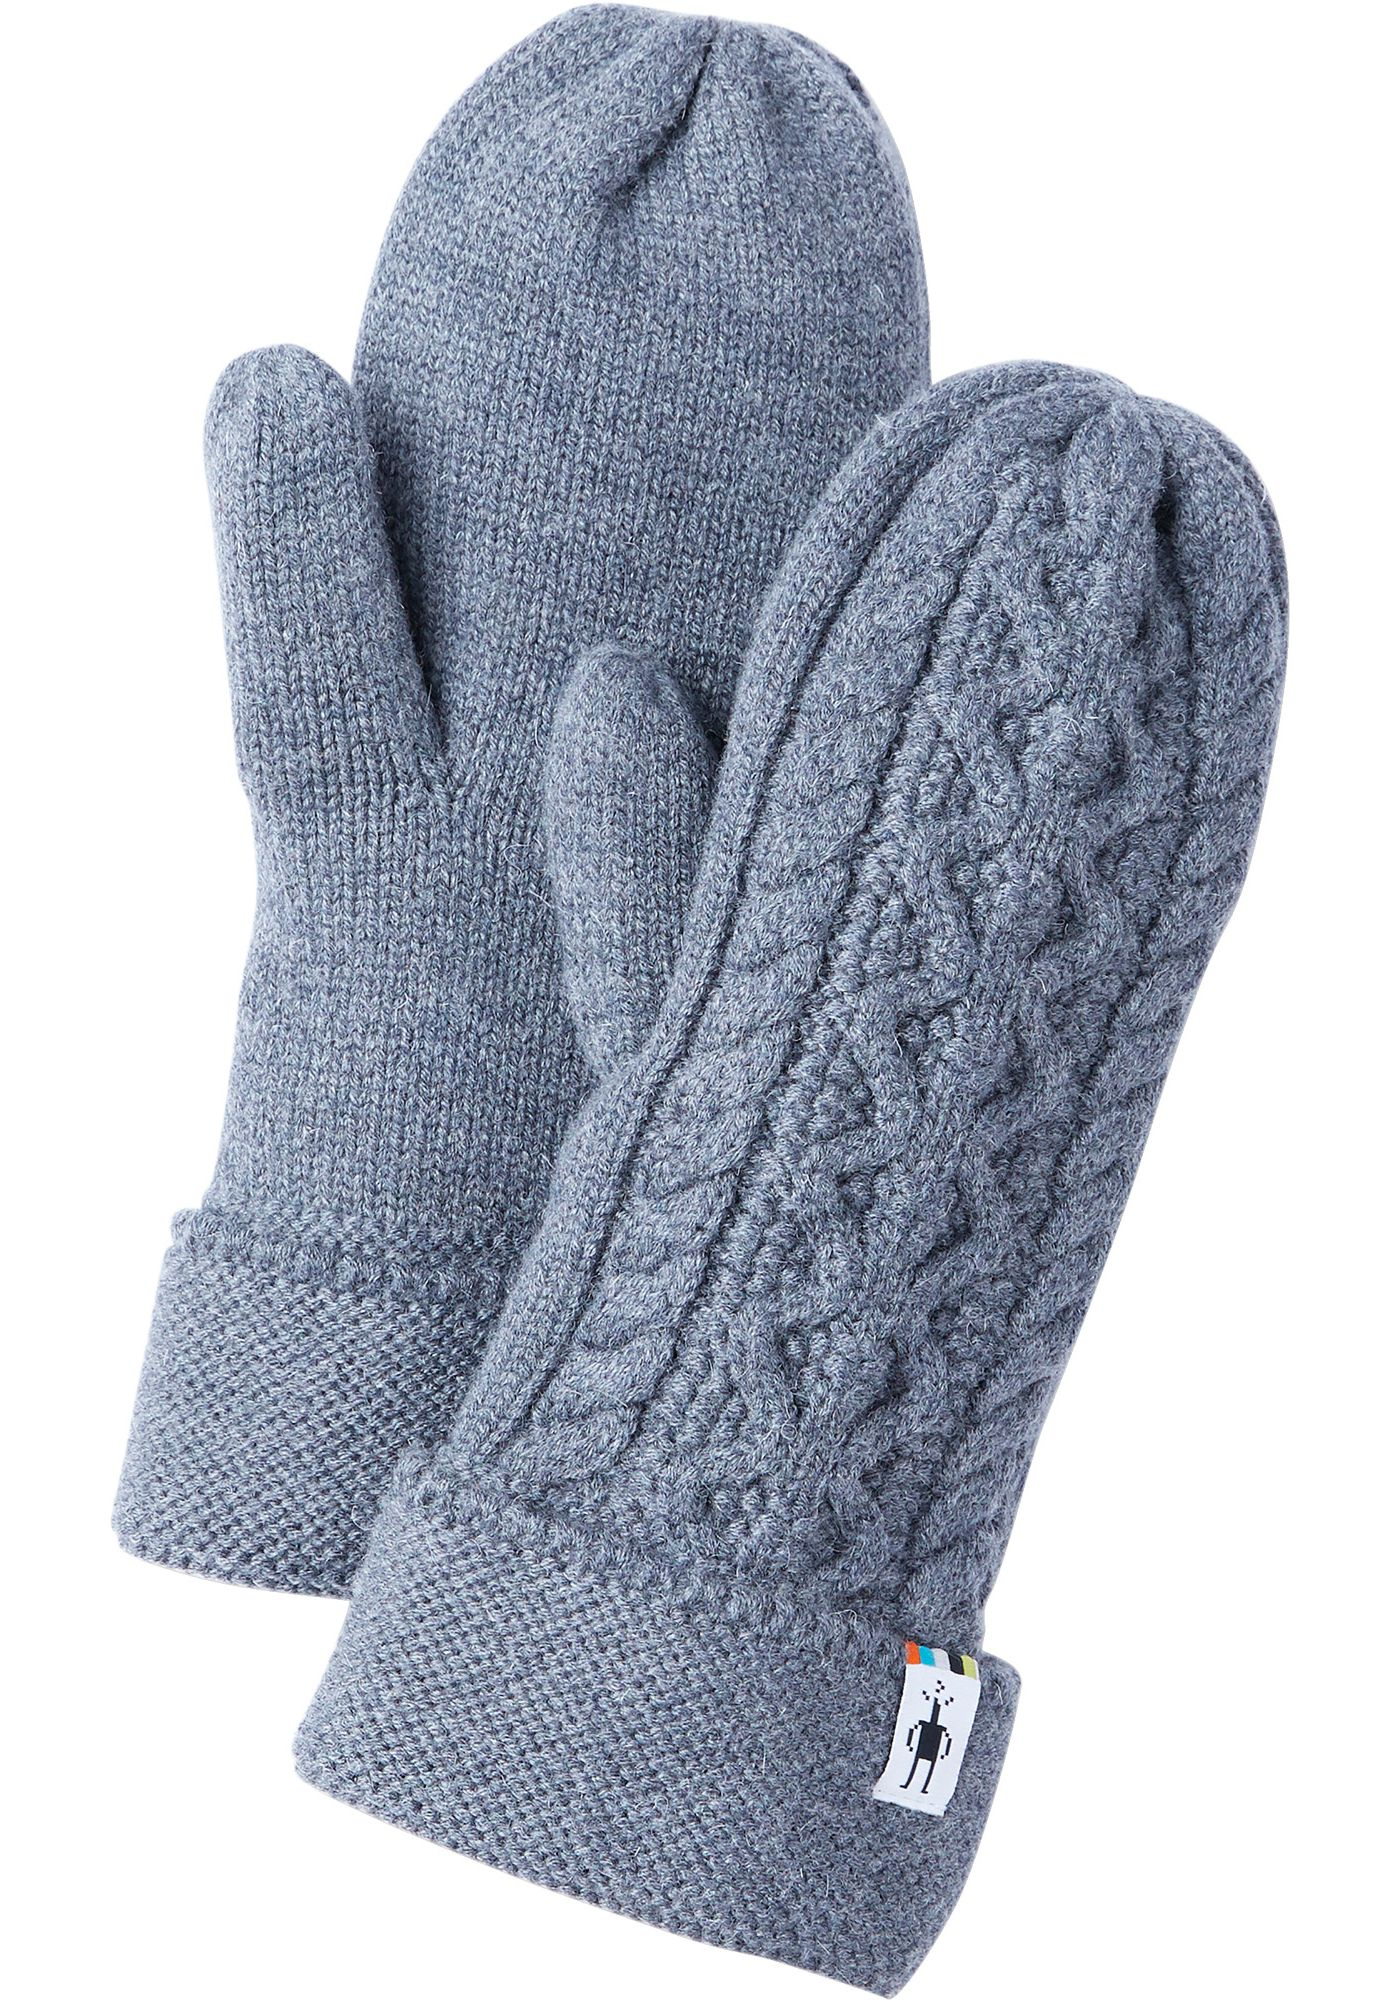 Smartwool Bunny Slope Mittens